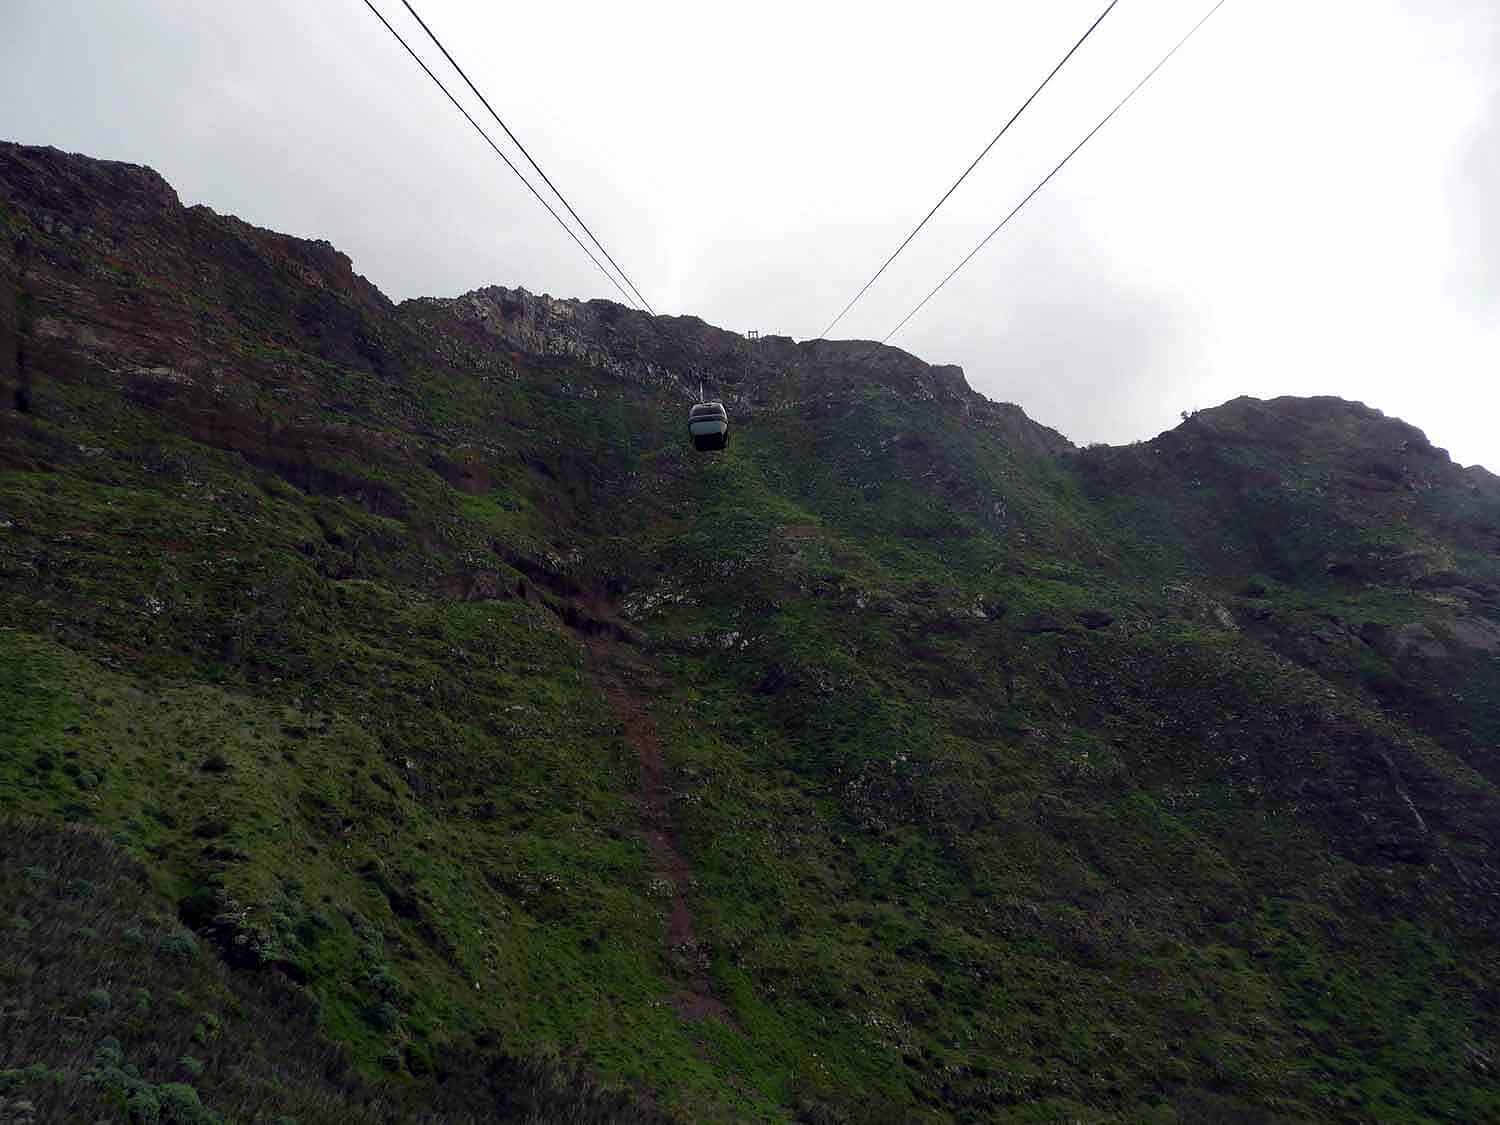 portugal-madeira-island-teleferico-achadas-da-cruz-cable-car.jpg